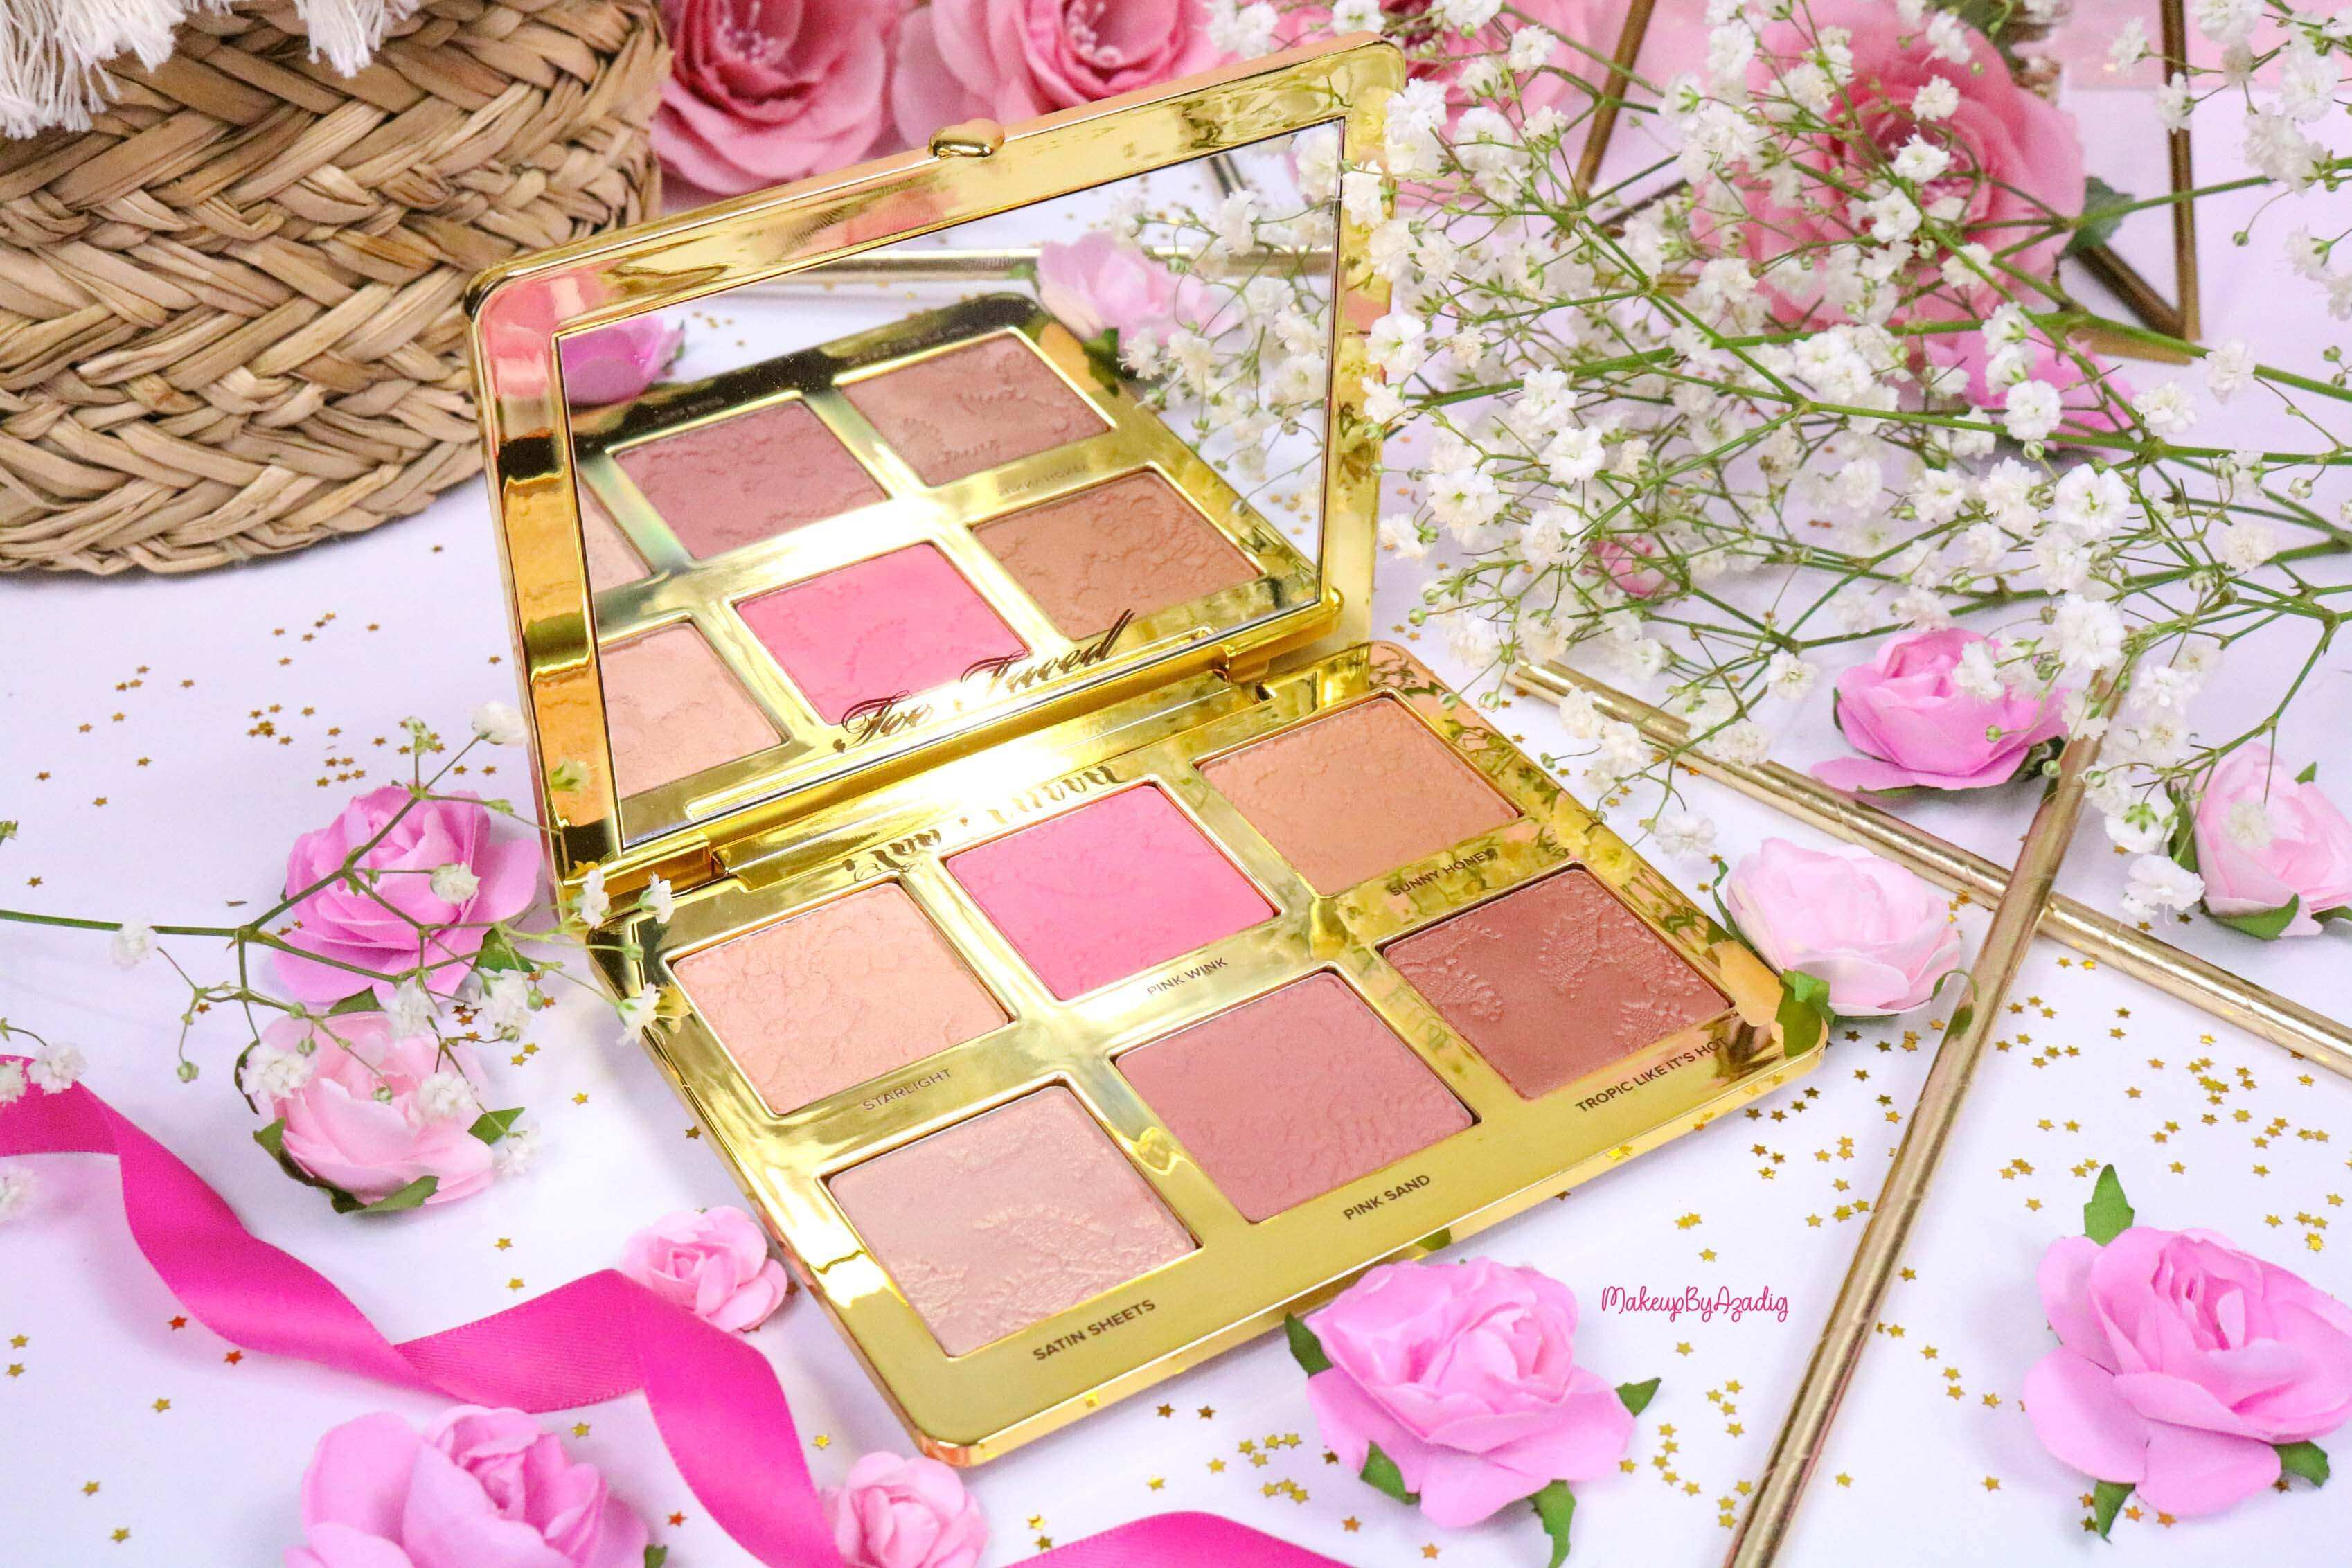 revue-review-palette-teint-natural-face-too-faced-makeupbyazadig-sephora-france-avis-prix-swatch-blush-highlighter-pink